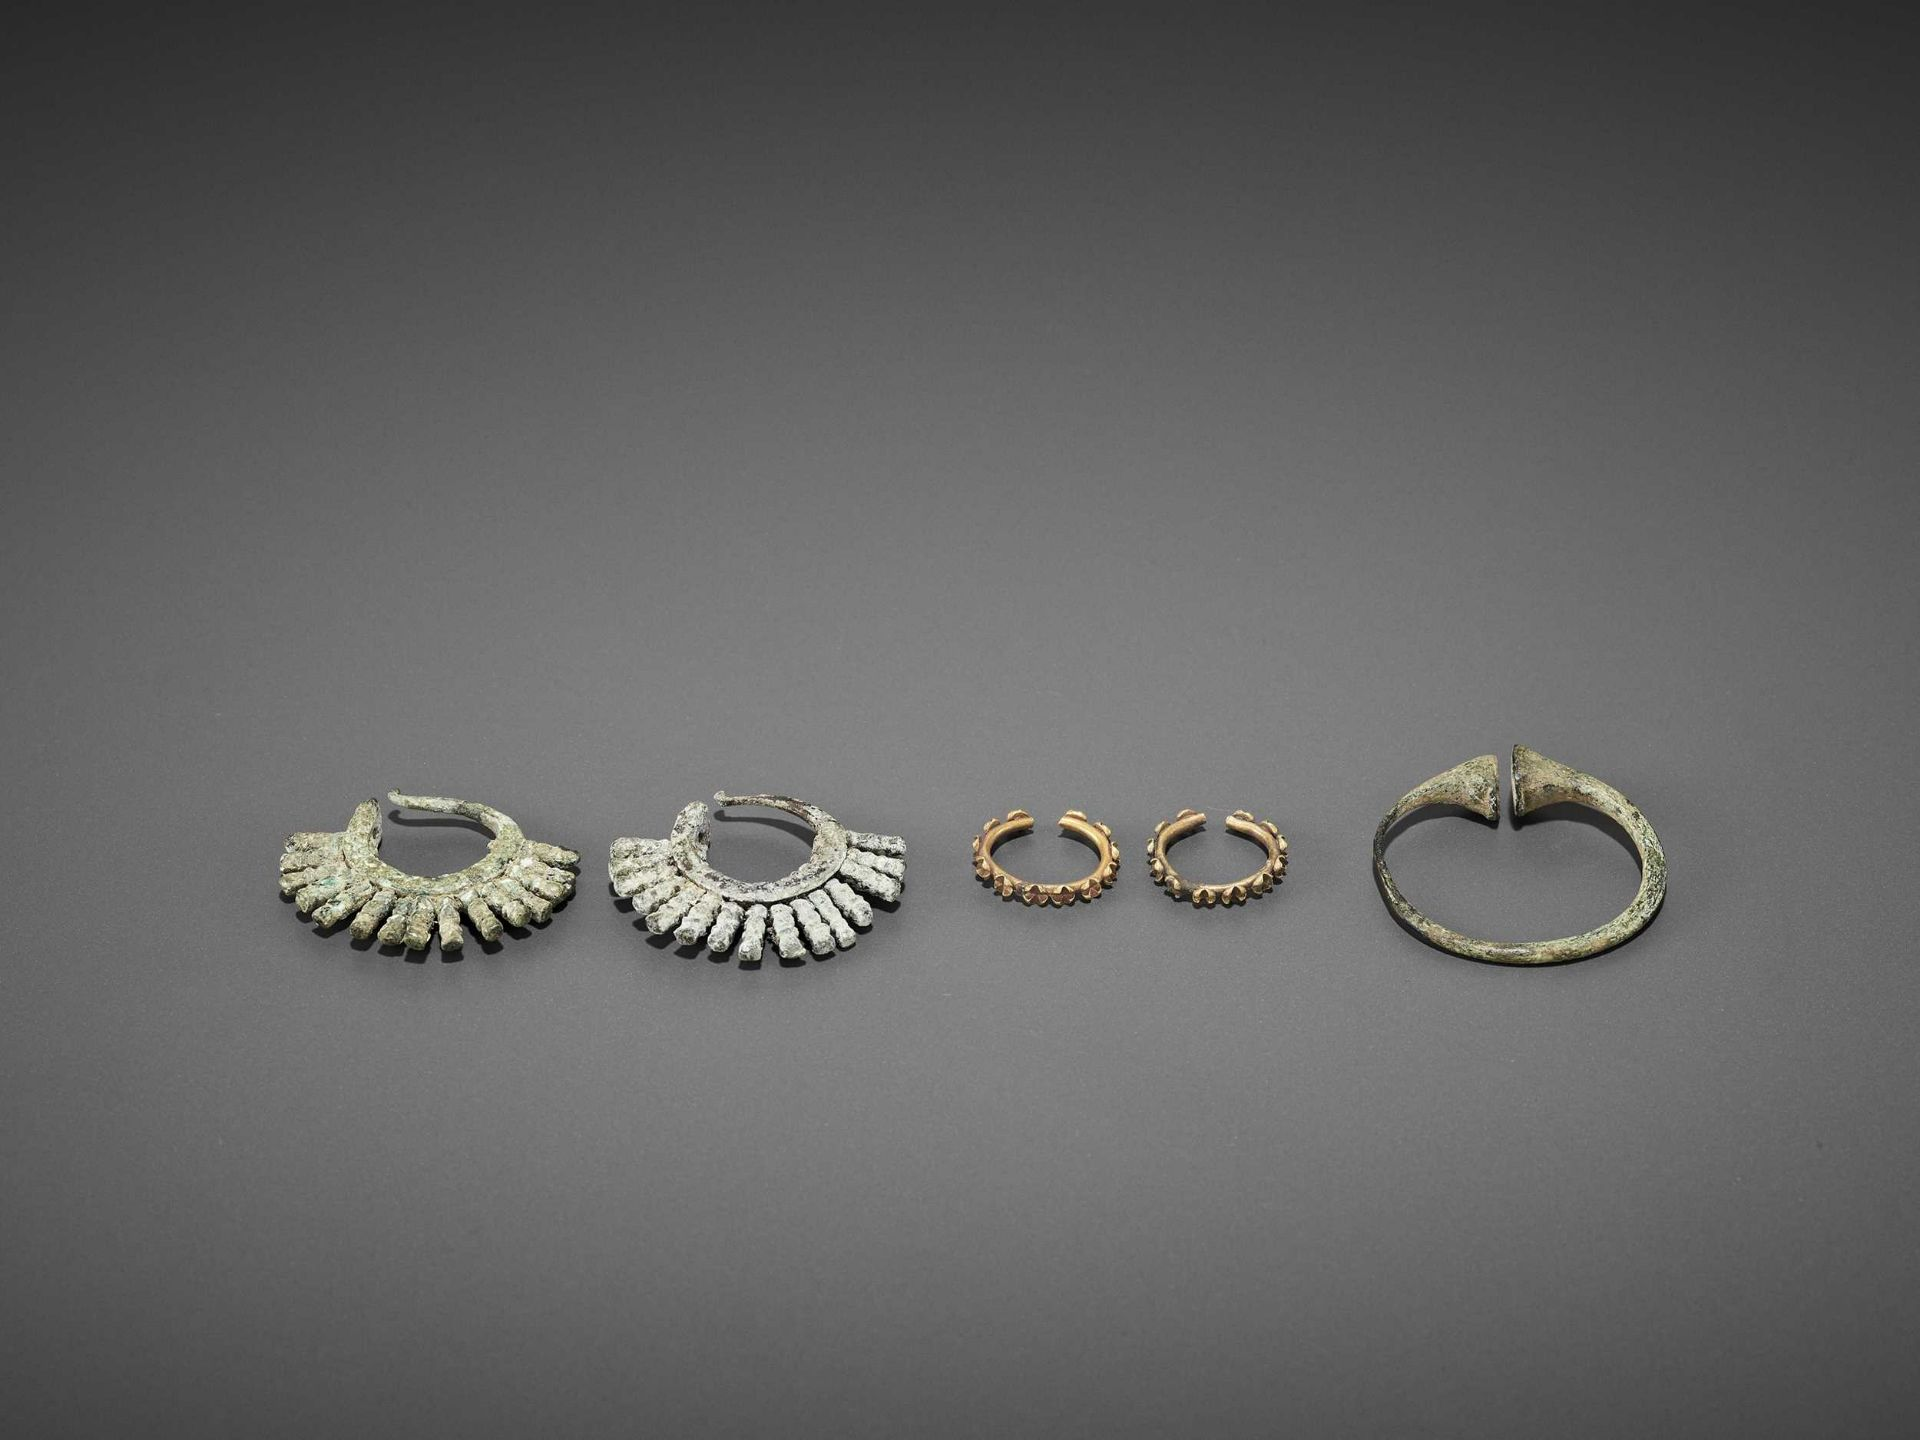 FIVE BACTRIAN GOLD AND BRONZE EARRINGS